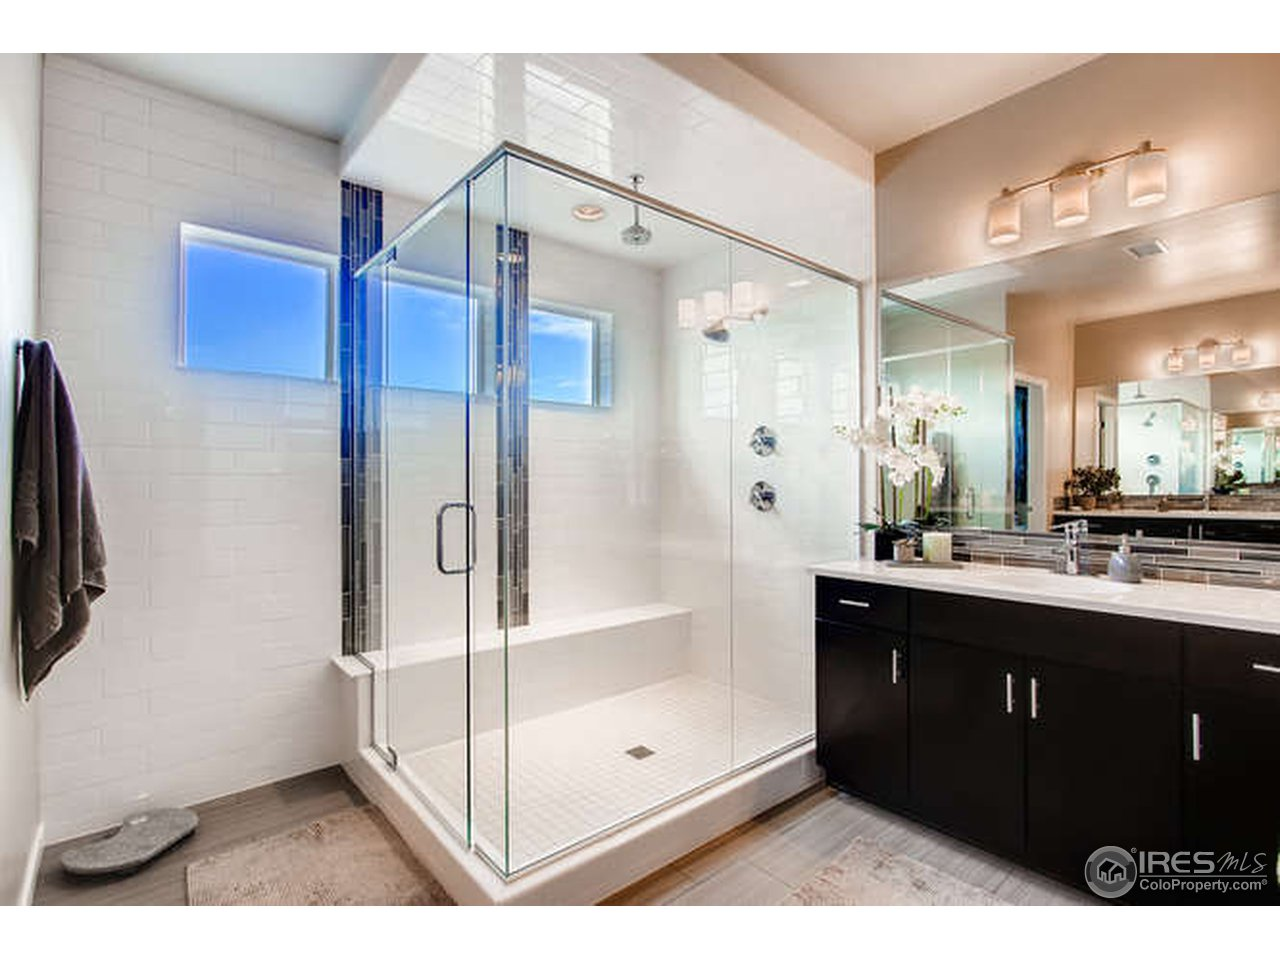 The master shower is huge!